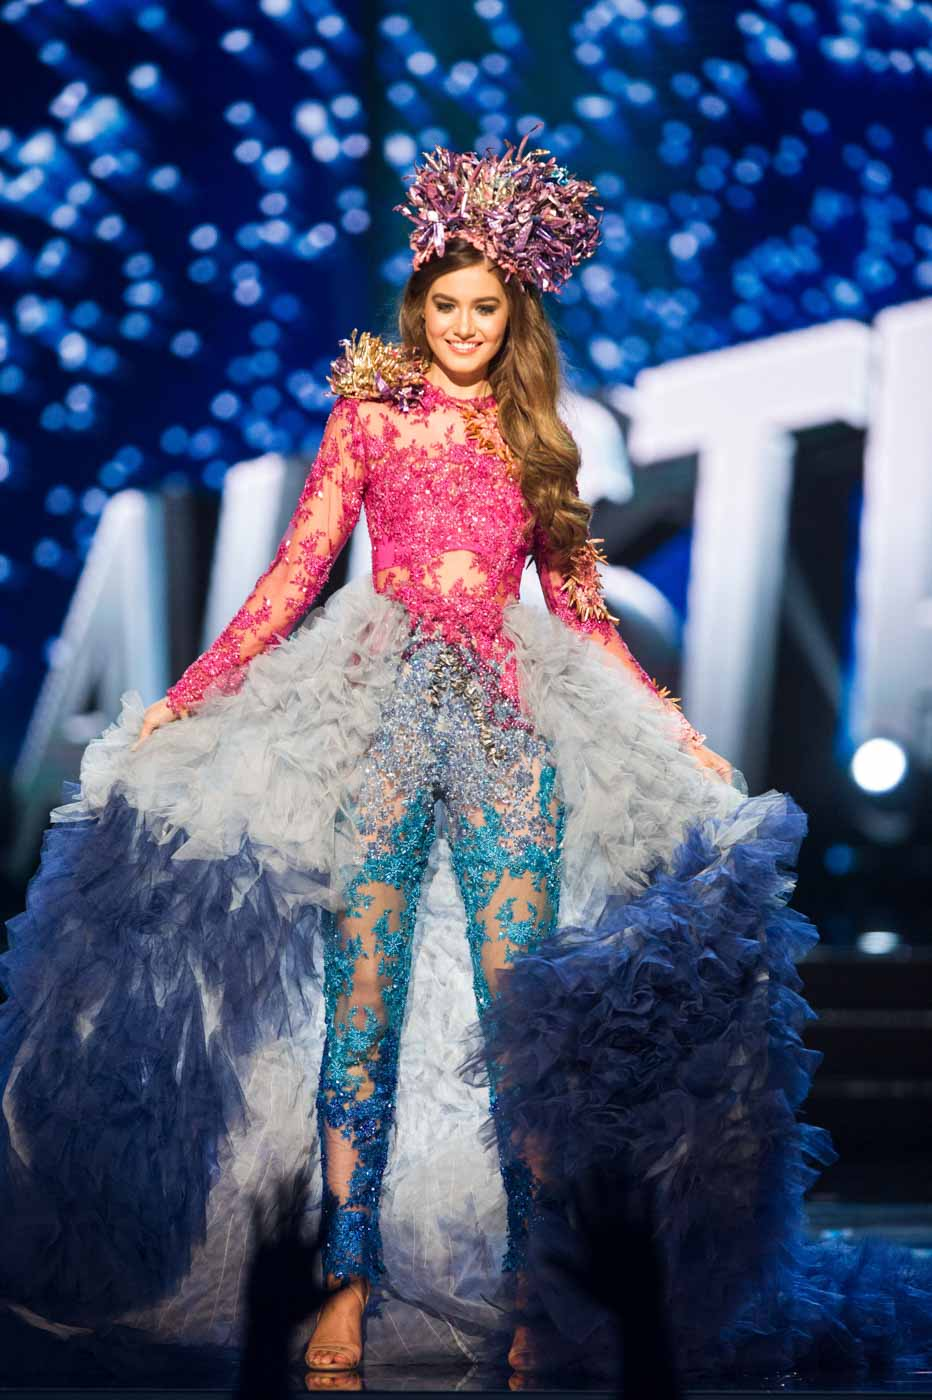 IN PHOTOS: Miss Universe 2016 candidates in their national